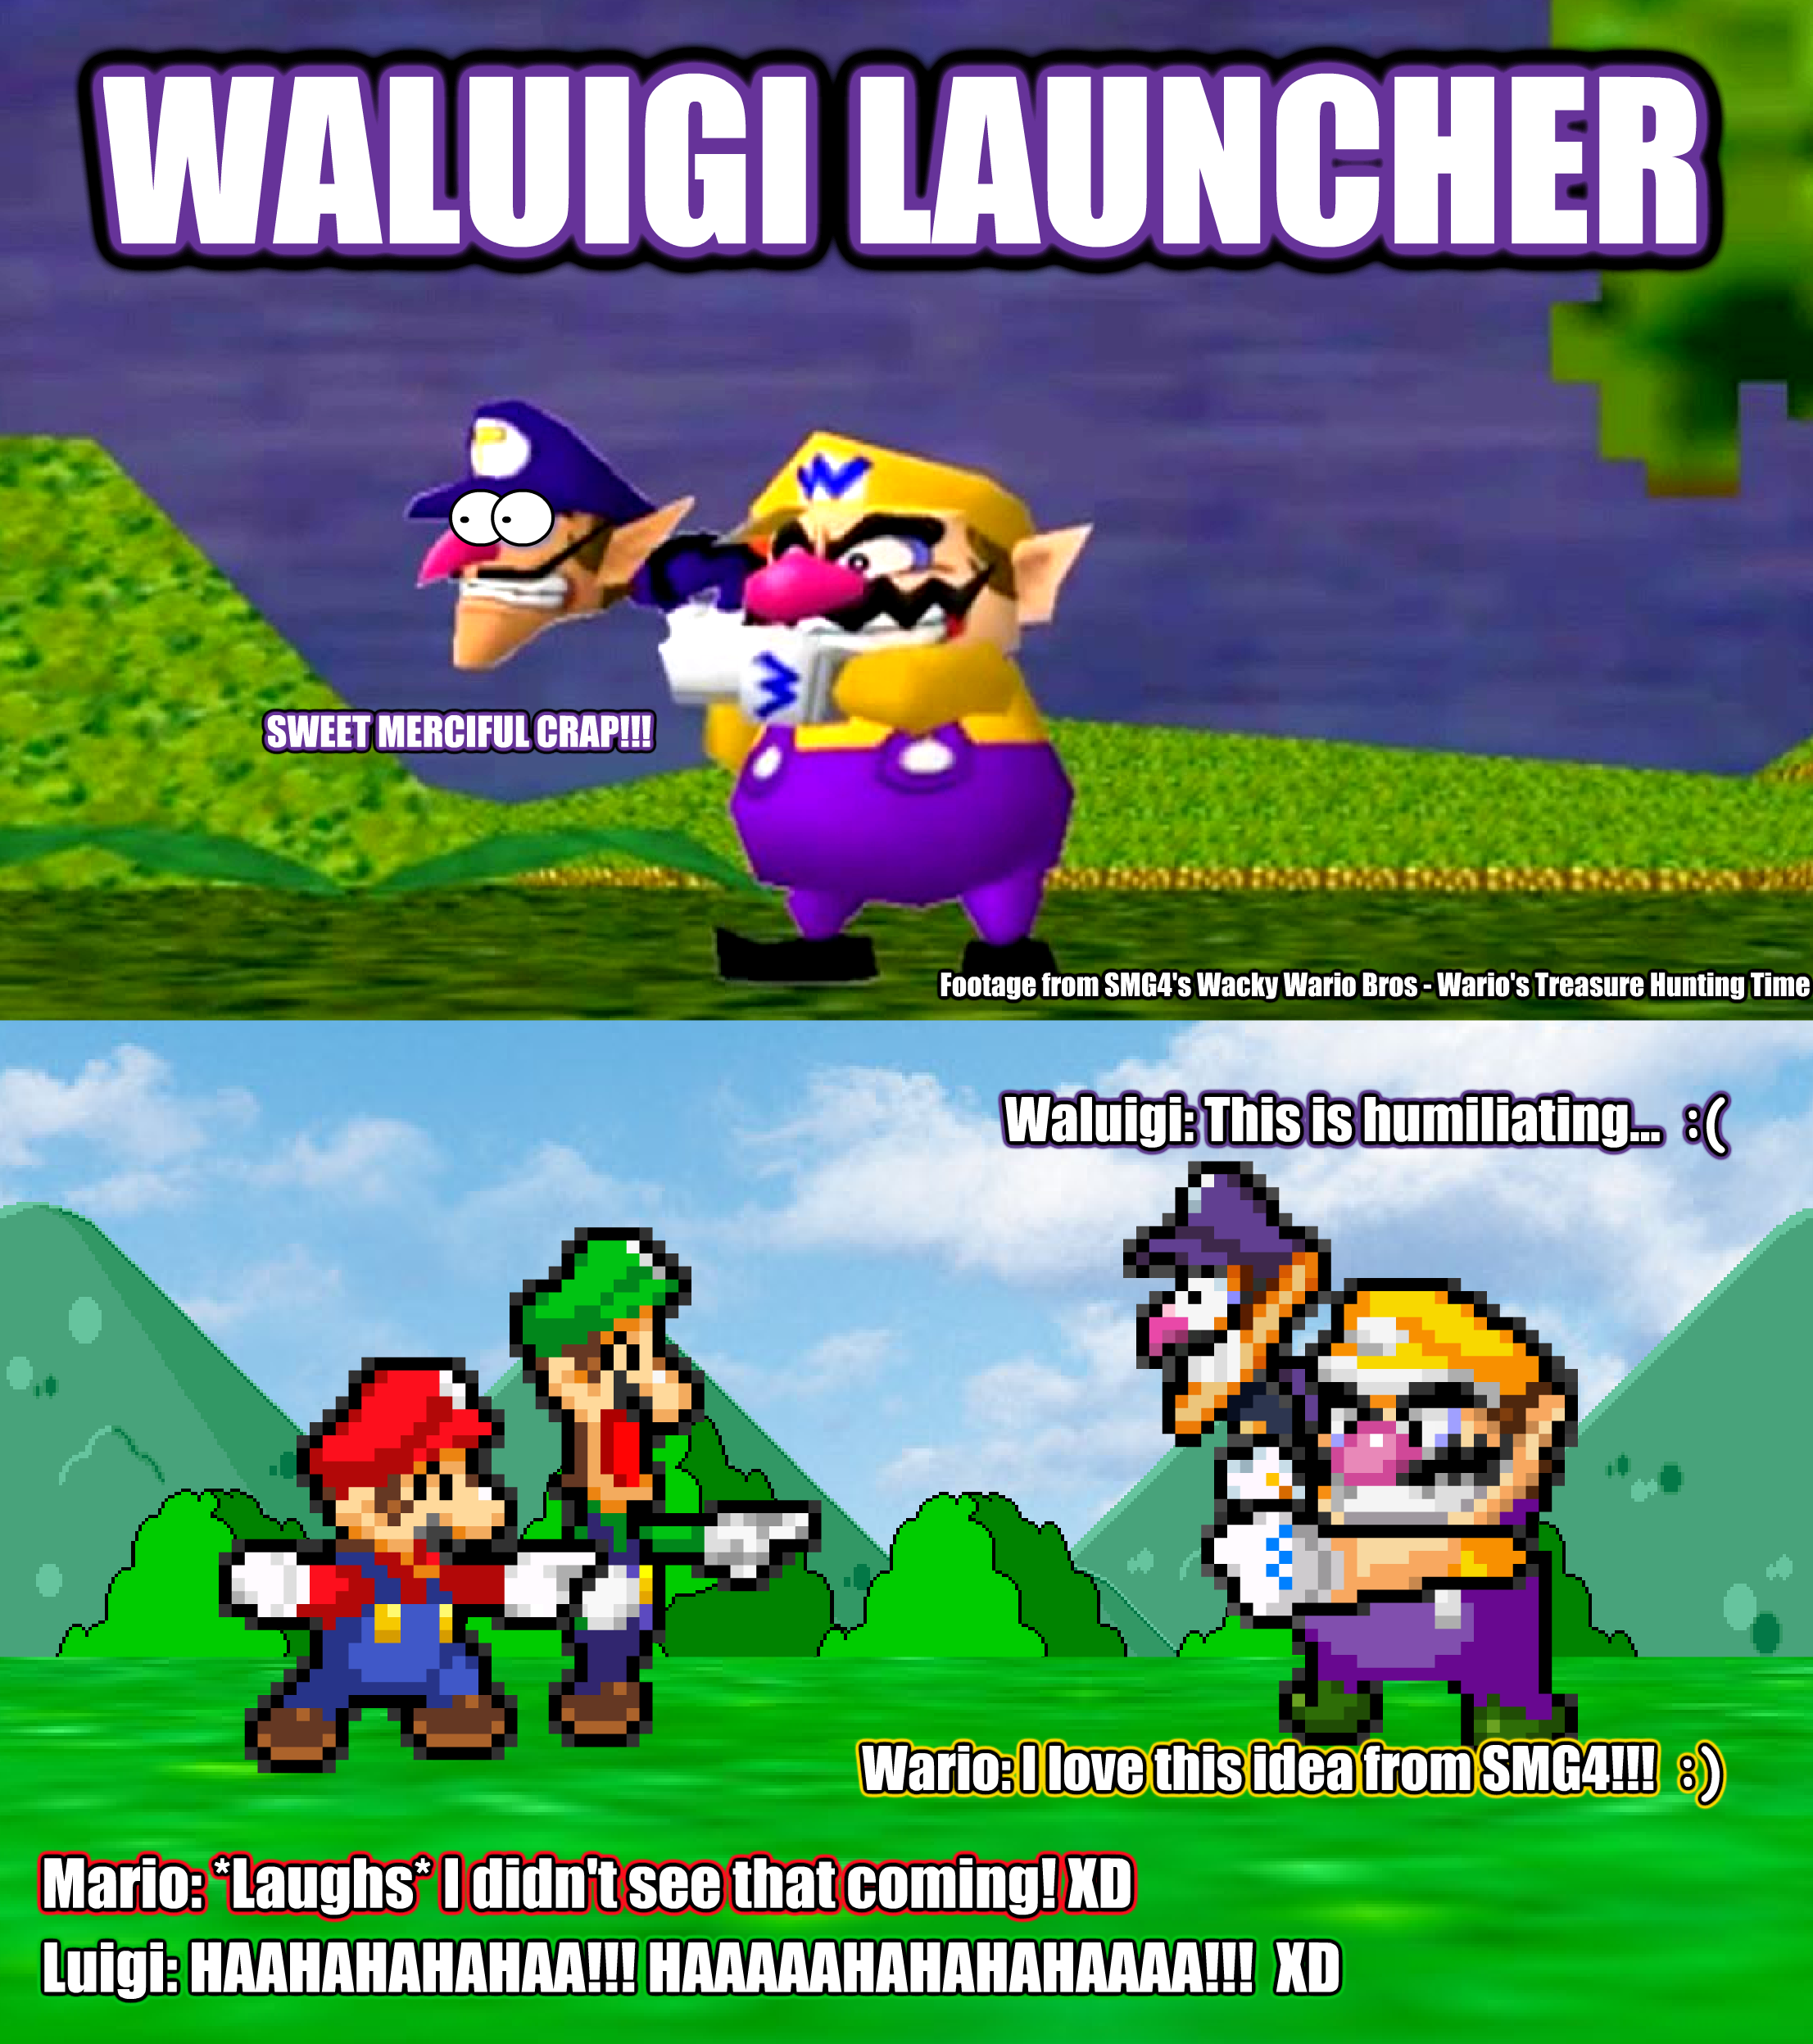 SMBHotS Mario Bros Reaction Of Waluigi Launcher By